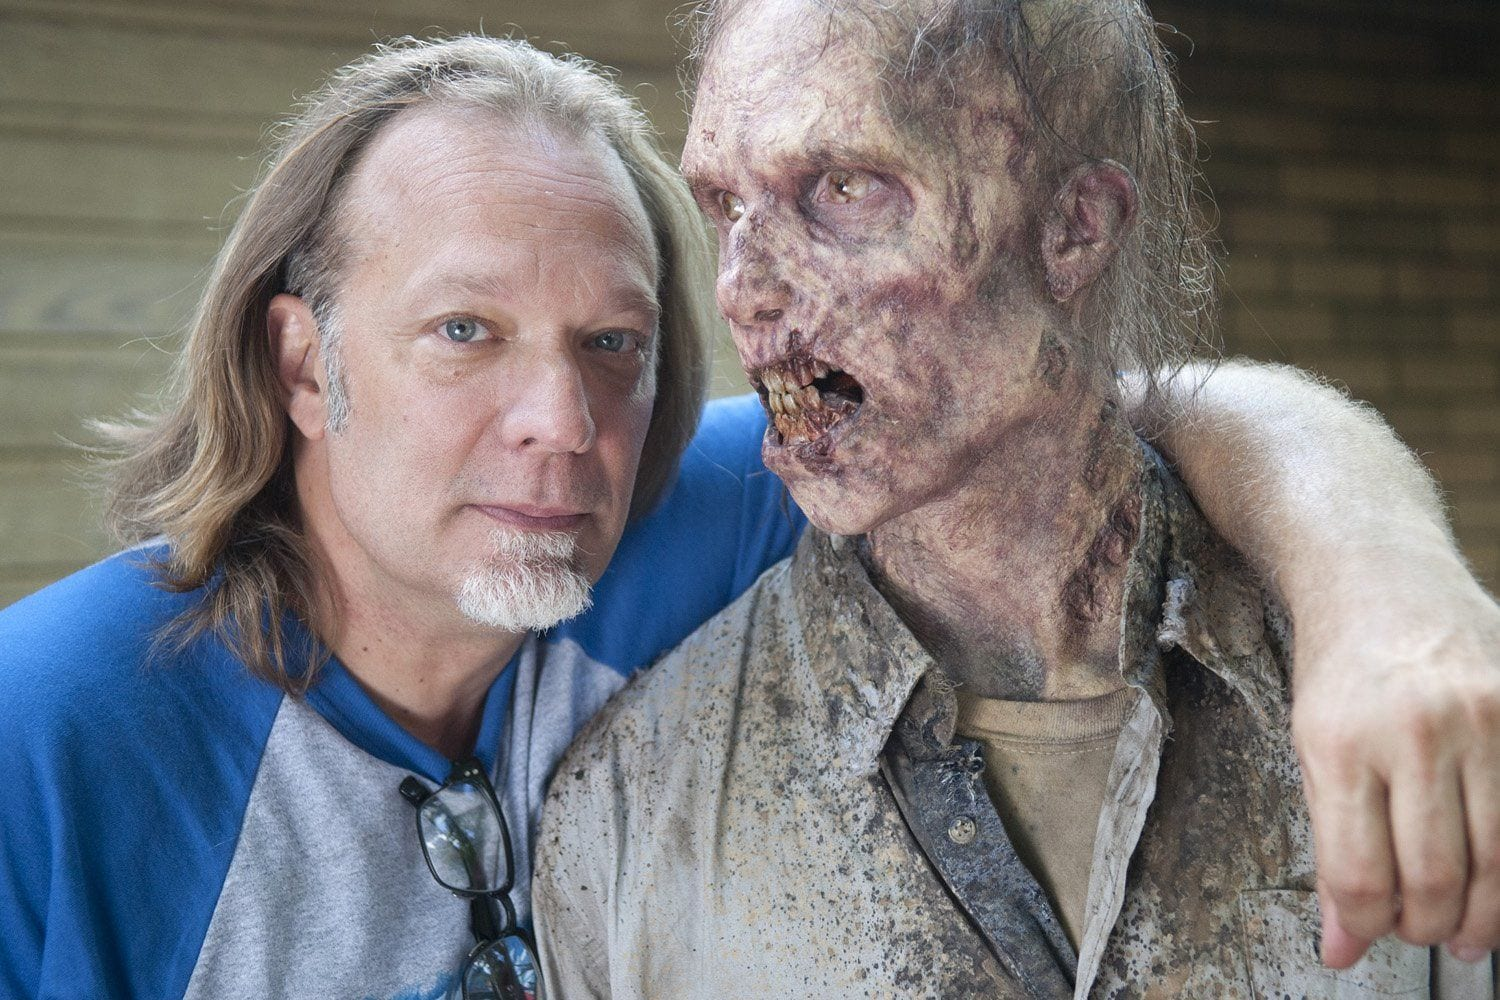 06afe59ba66dda7e30240a8d10e32f0f30c7cd2b-interview-twd-s-greg-nicotero-talks-zombies-what-it-means-to-be-a-fan-jpeg-131375